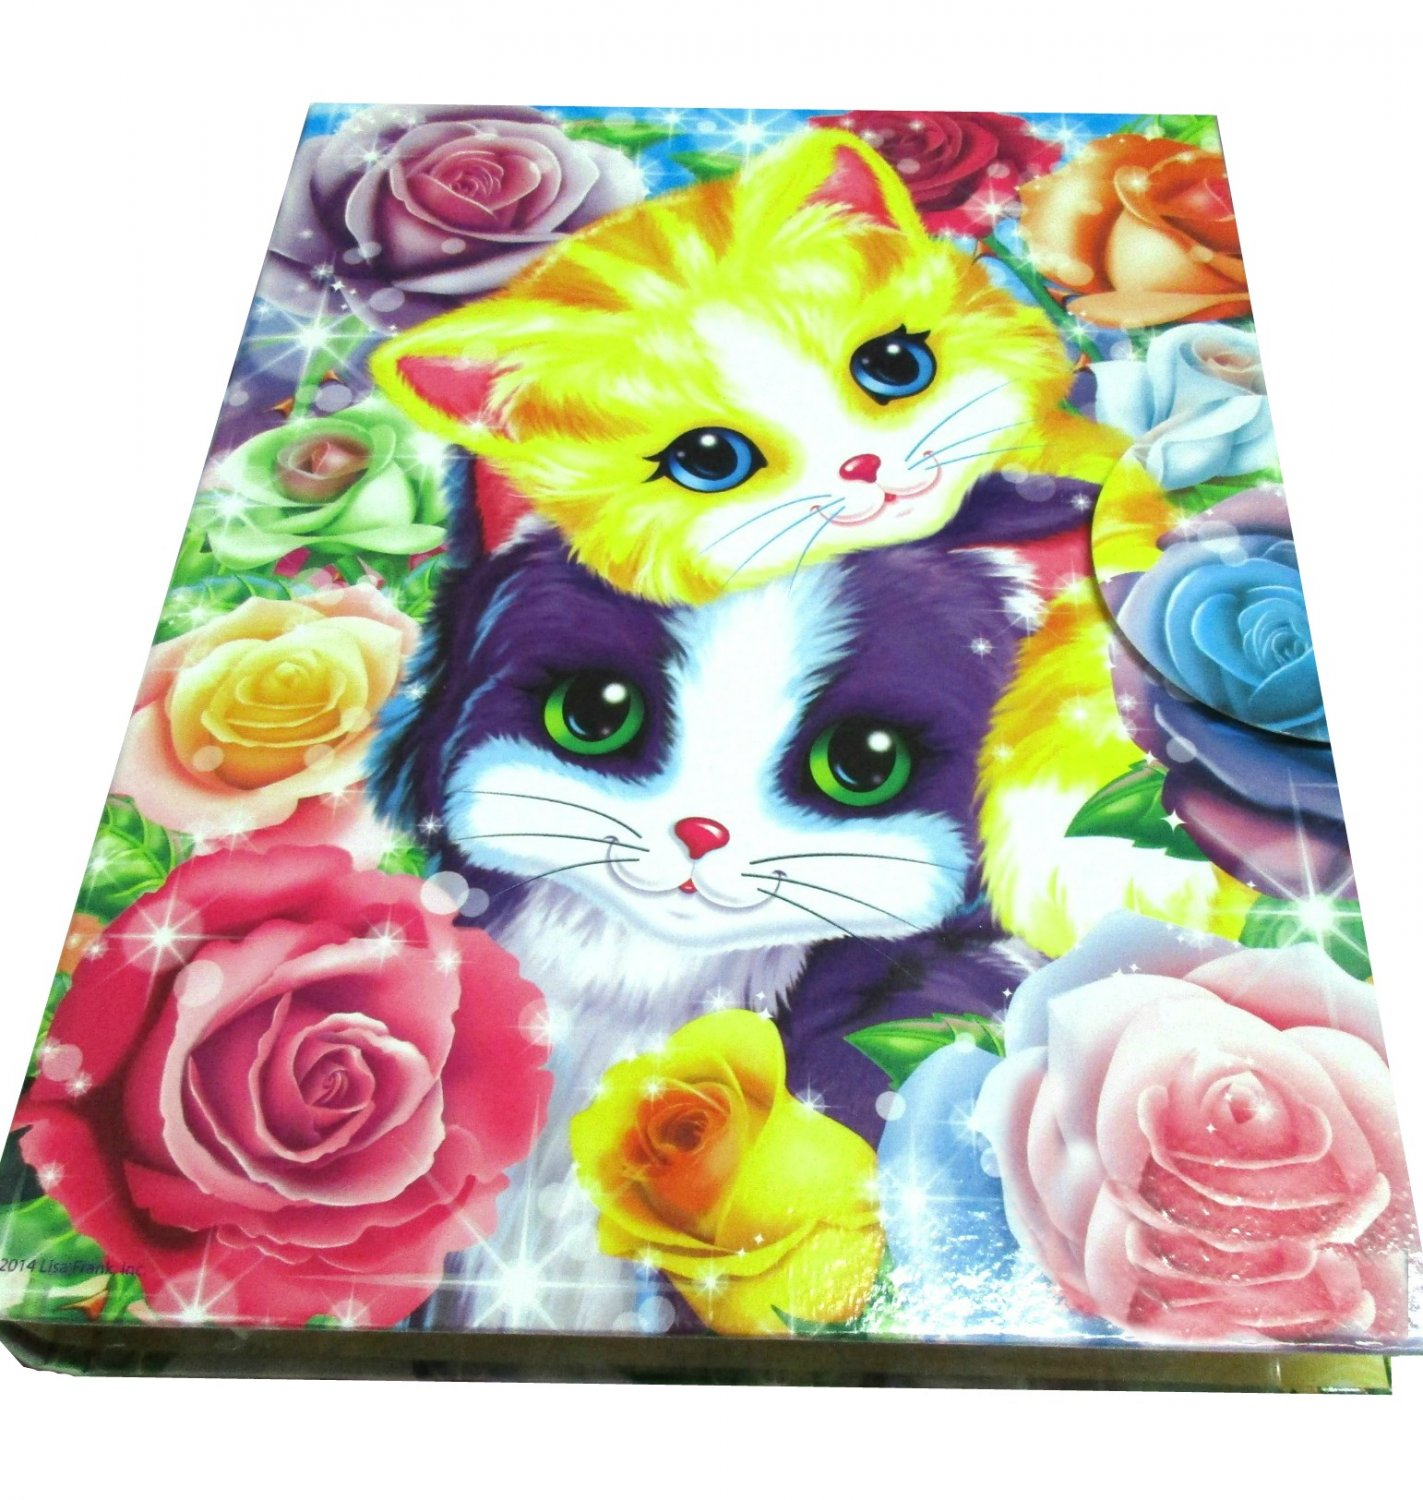 Lisa Frank Binder with 3 Puzzles- Stationery & Puzzle Holder Kittens Kitty Cat Roses